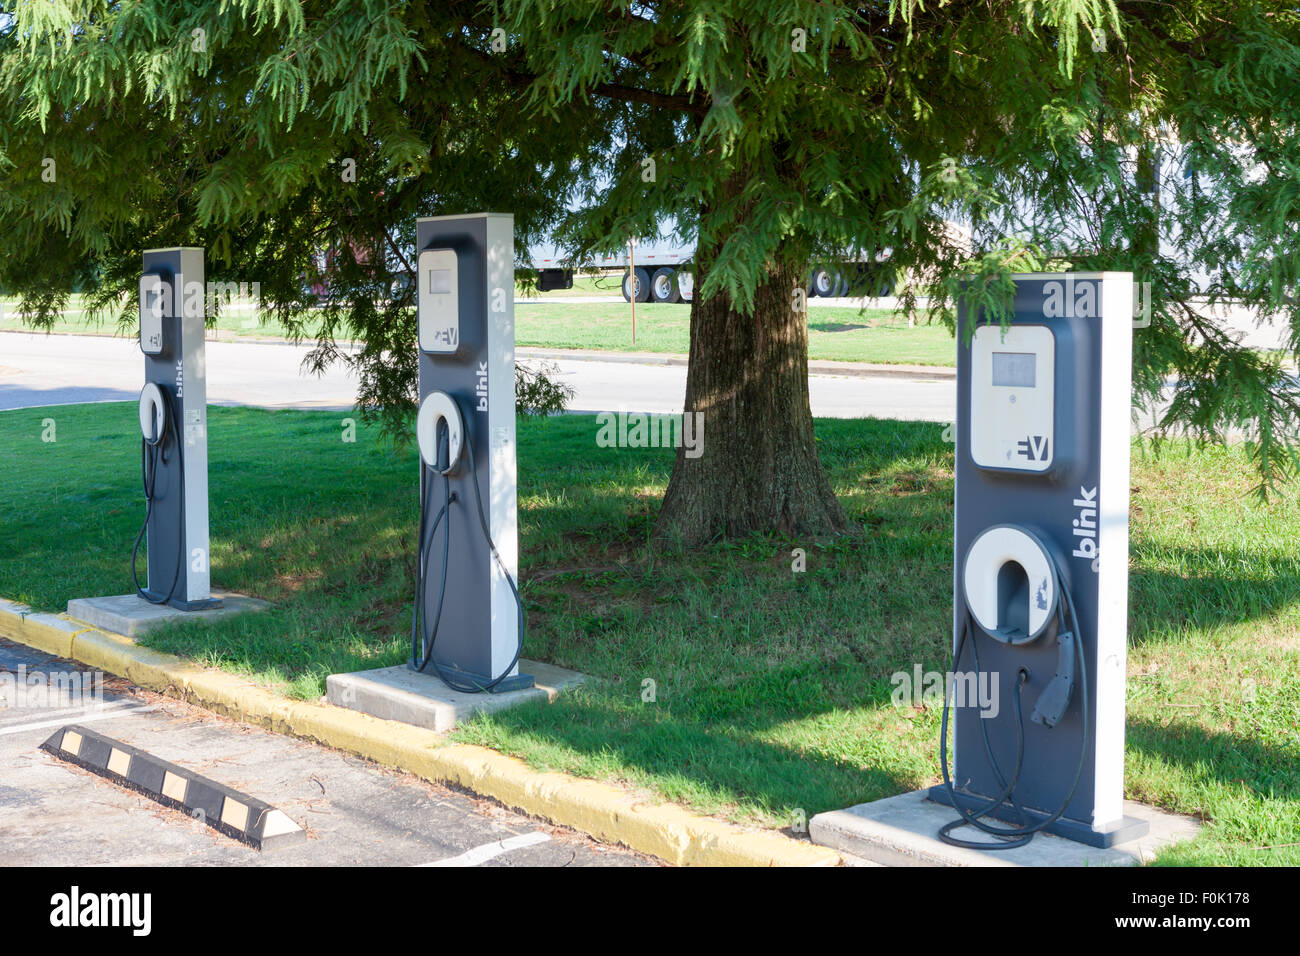 Blink EV charging stations sit idle waiting for the next electric vehicle to be charged. - Stock Image